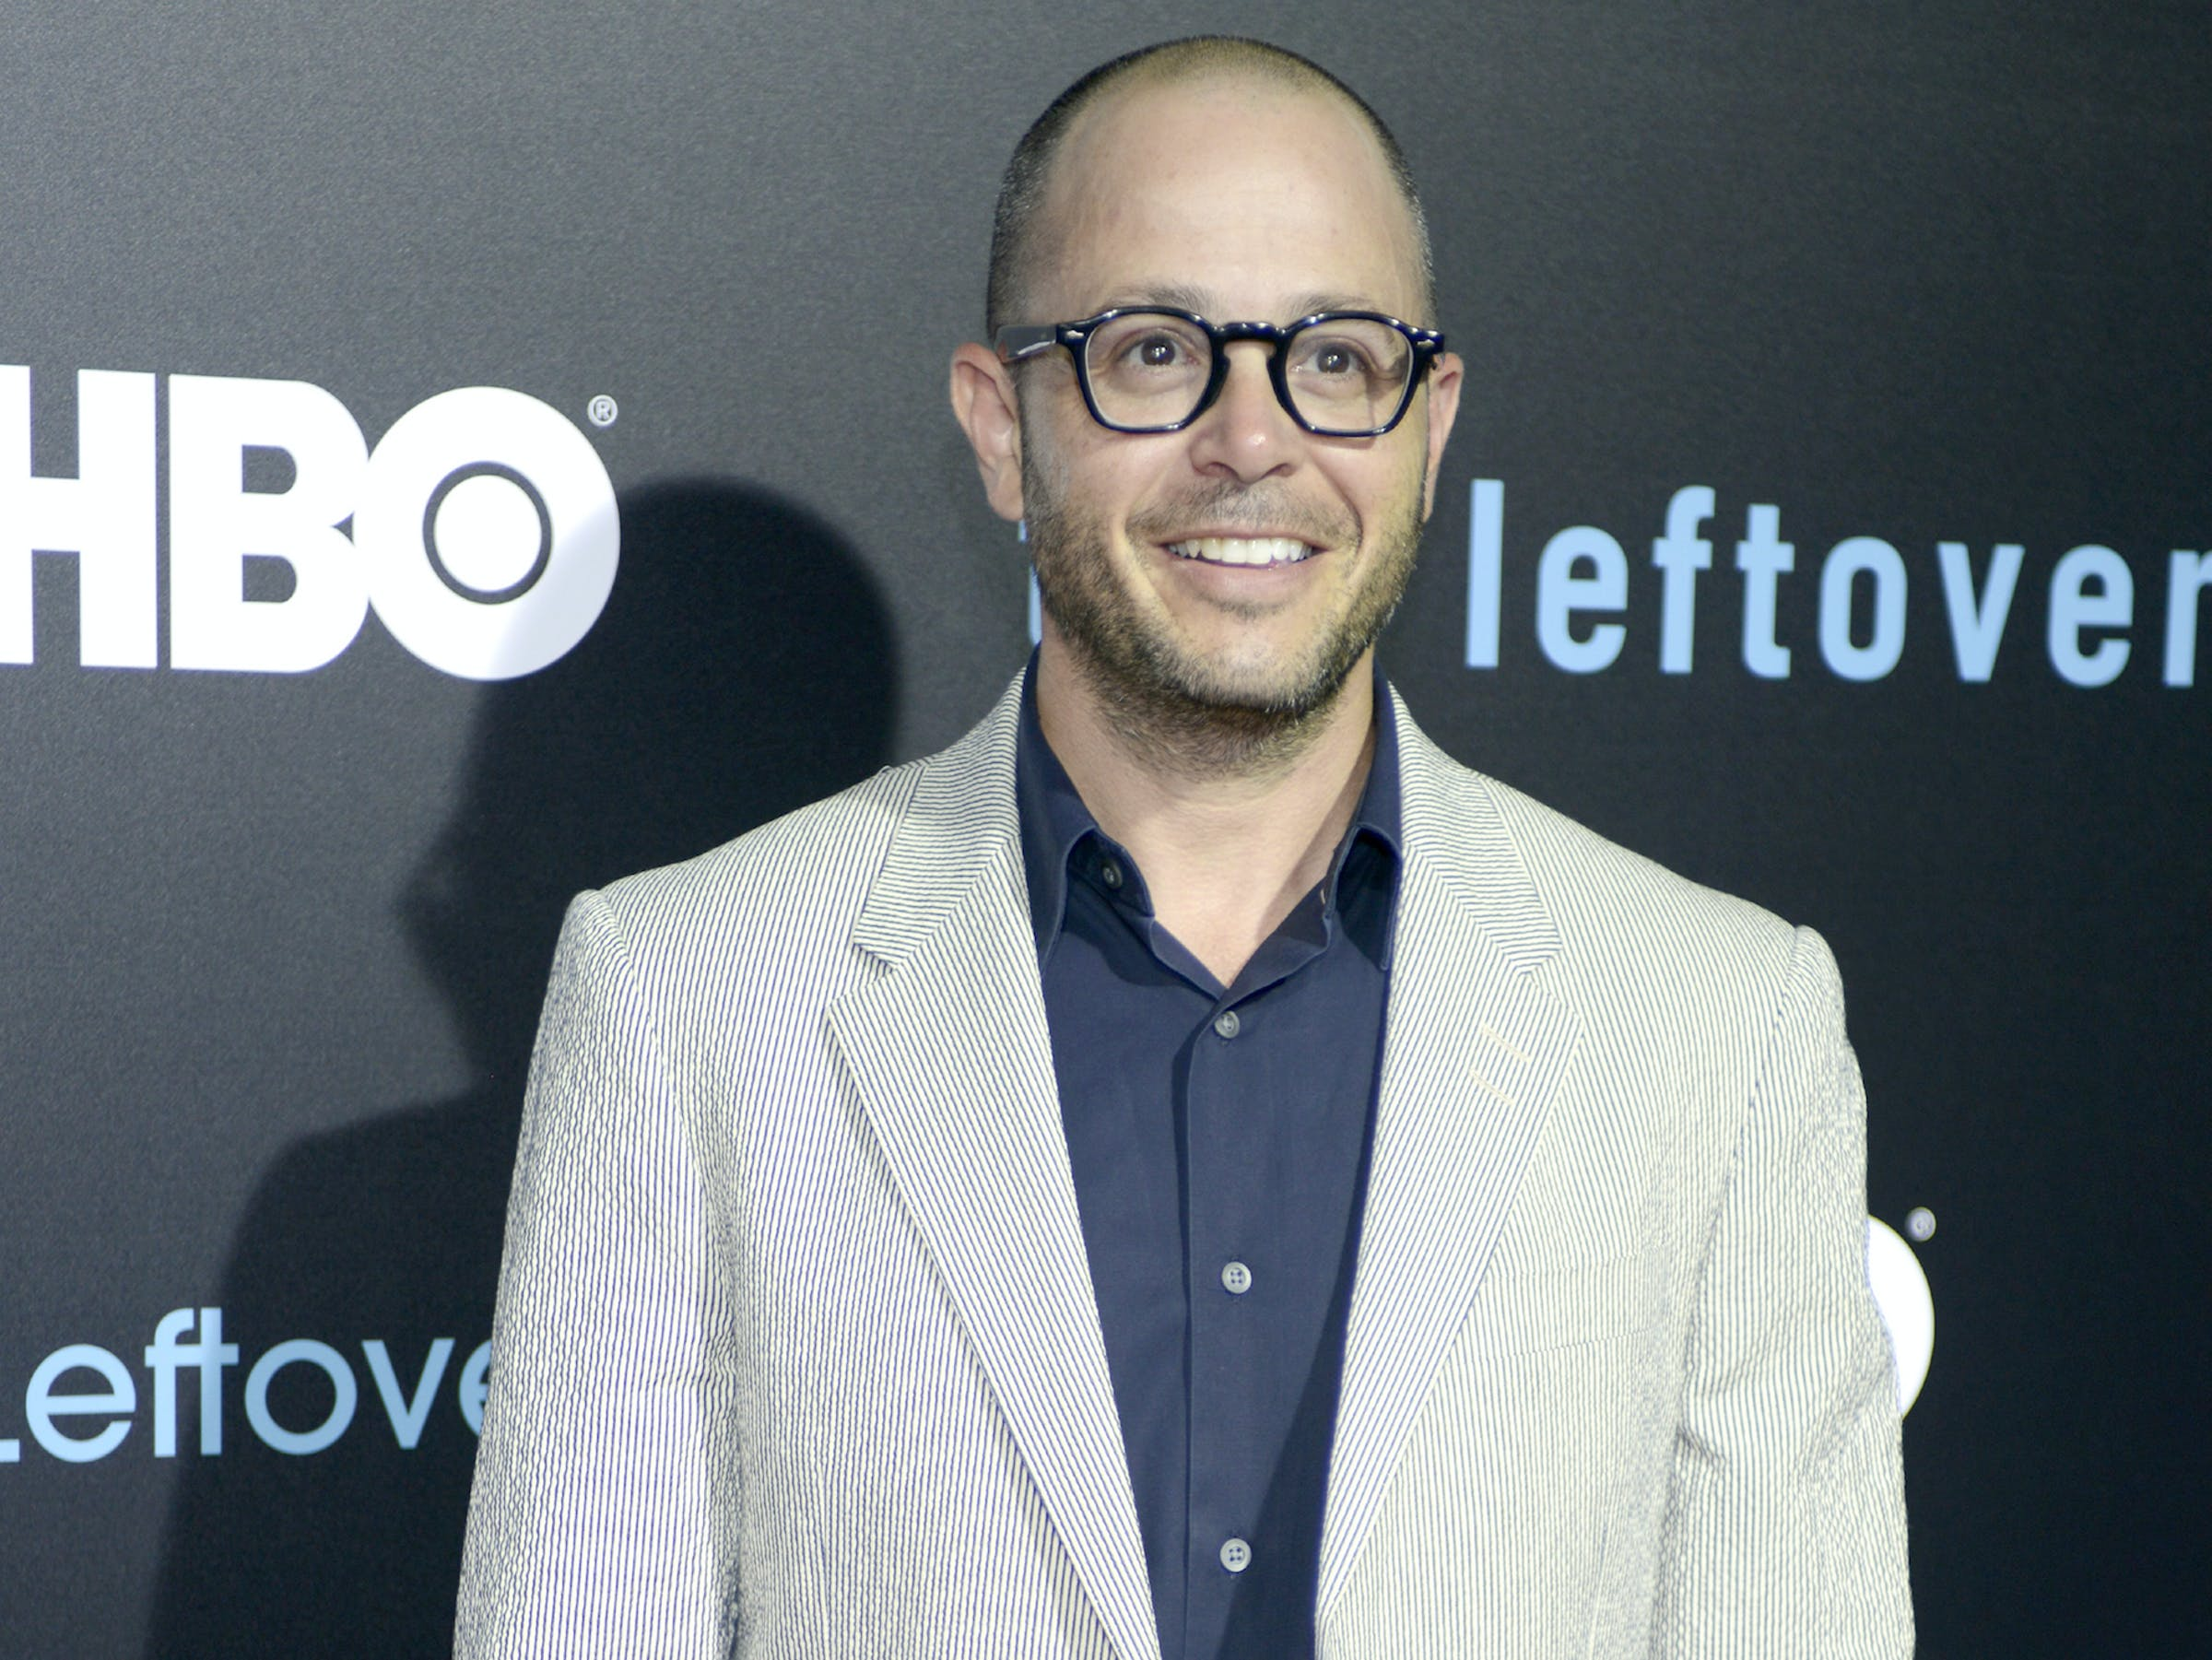 Damon Lindelof Talks About Ending 'The Leftovers' | Inverse